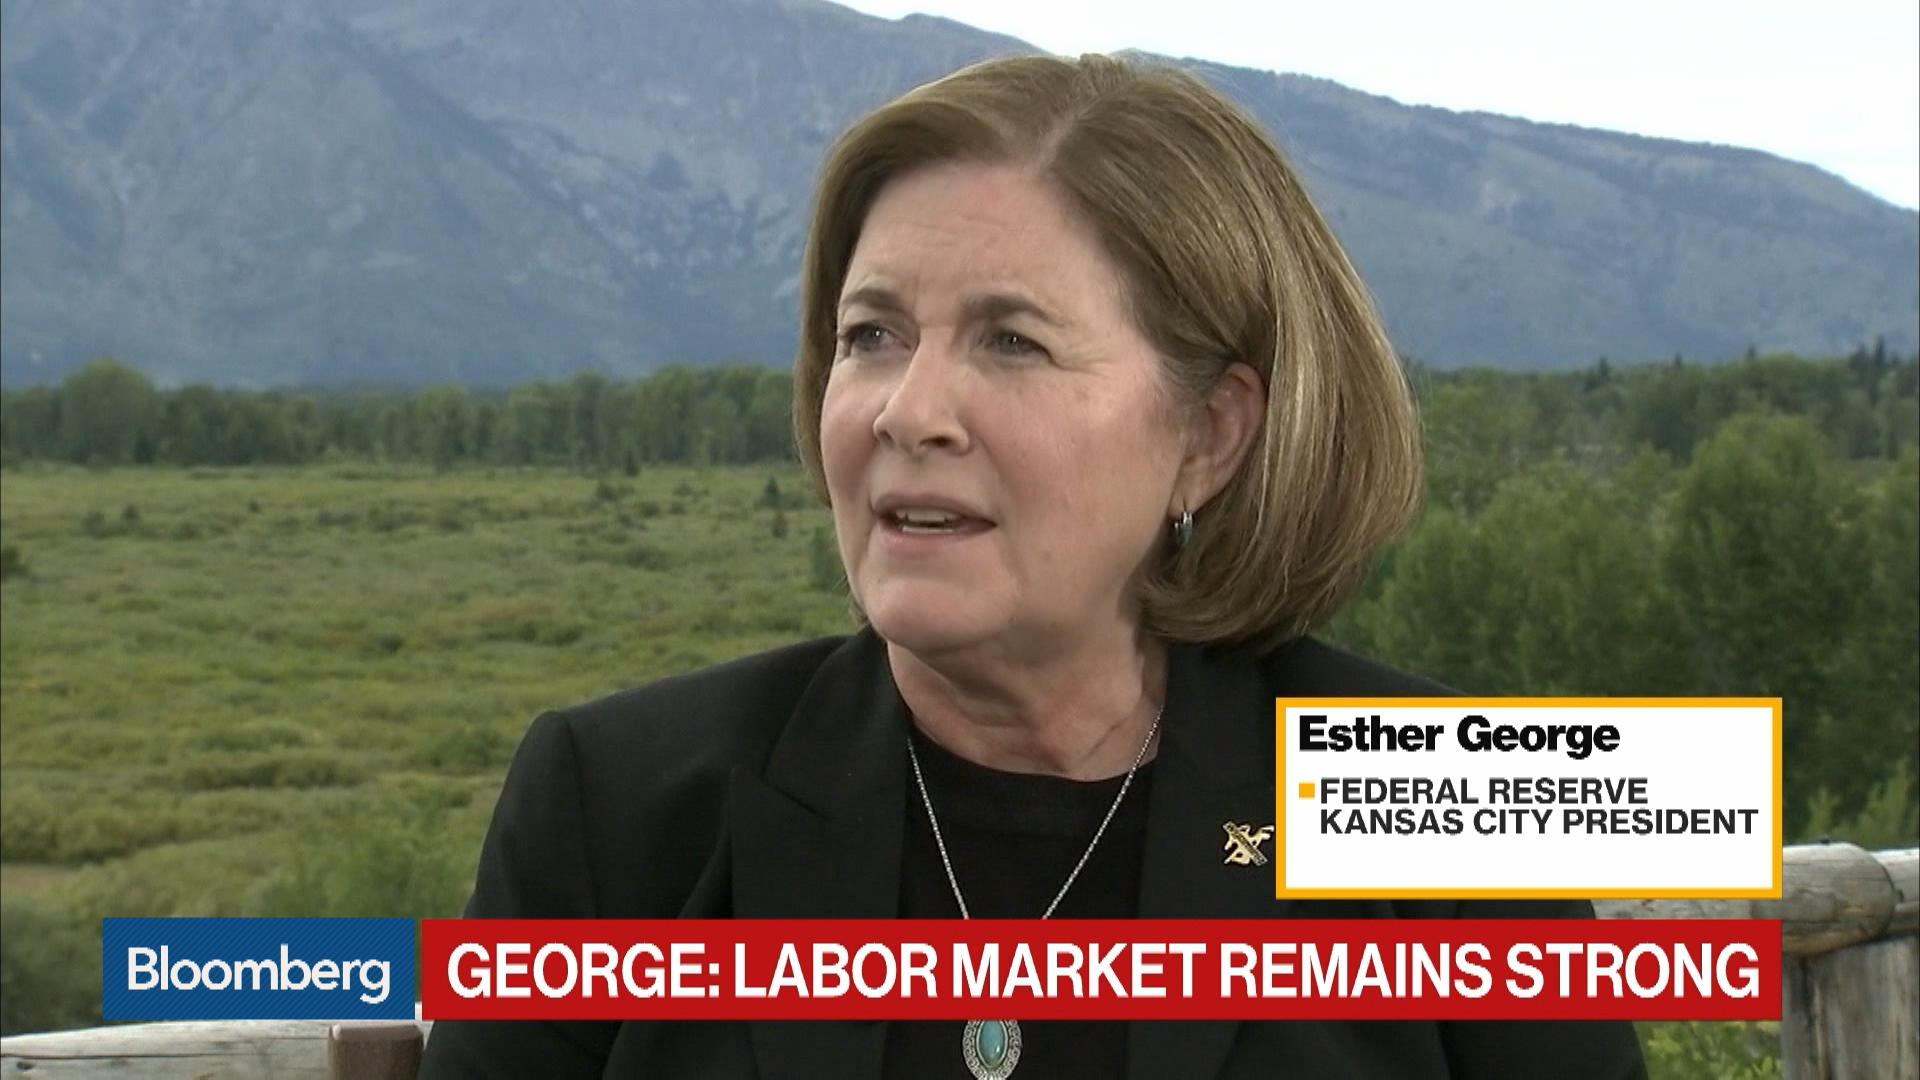 Federal Reserve's Esther George Says It's Not Yet Time to Provide More Accommodation